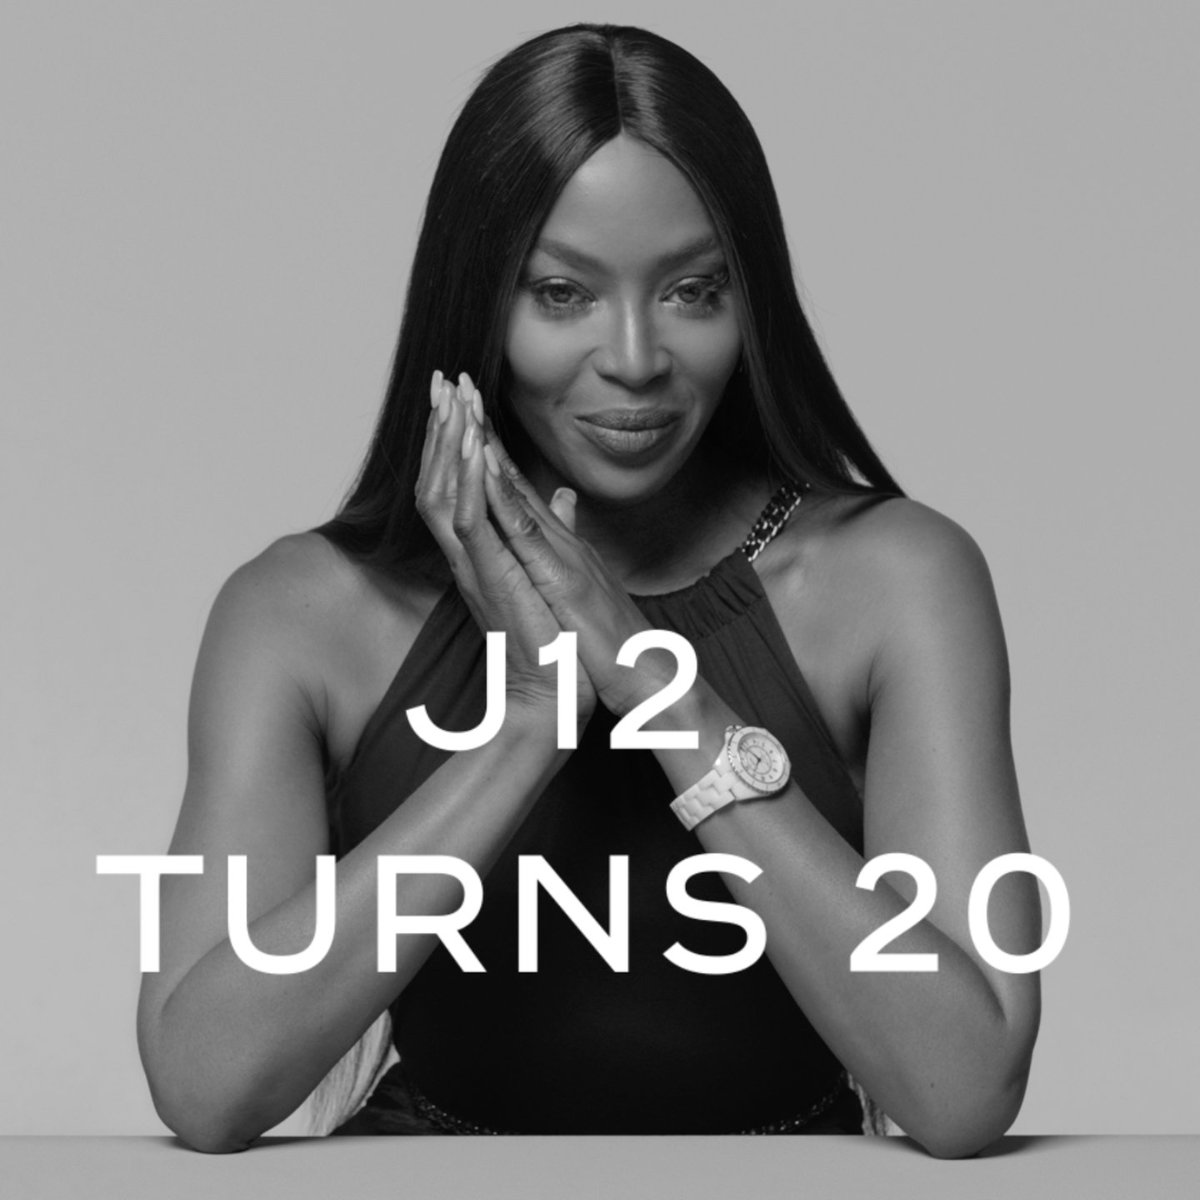 12 TURNS 20 The J12 muses answer questions in a series of special 20th anniversary interviews. Discover more on https://t.co/WTraxgVKNi  #J12Turns20 #CHANELWatches #ItsAllAboutSeconds https://t.co/VbqKPgpXdv